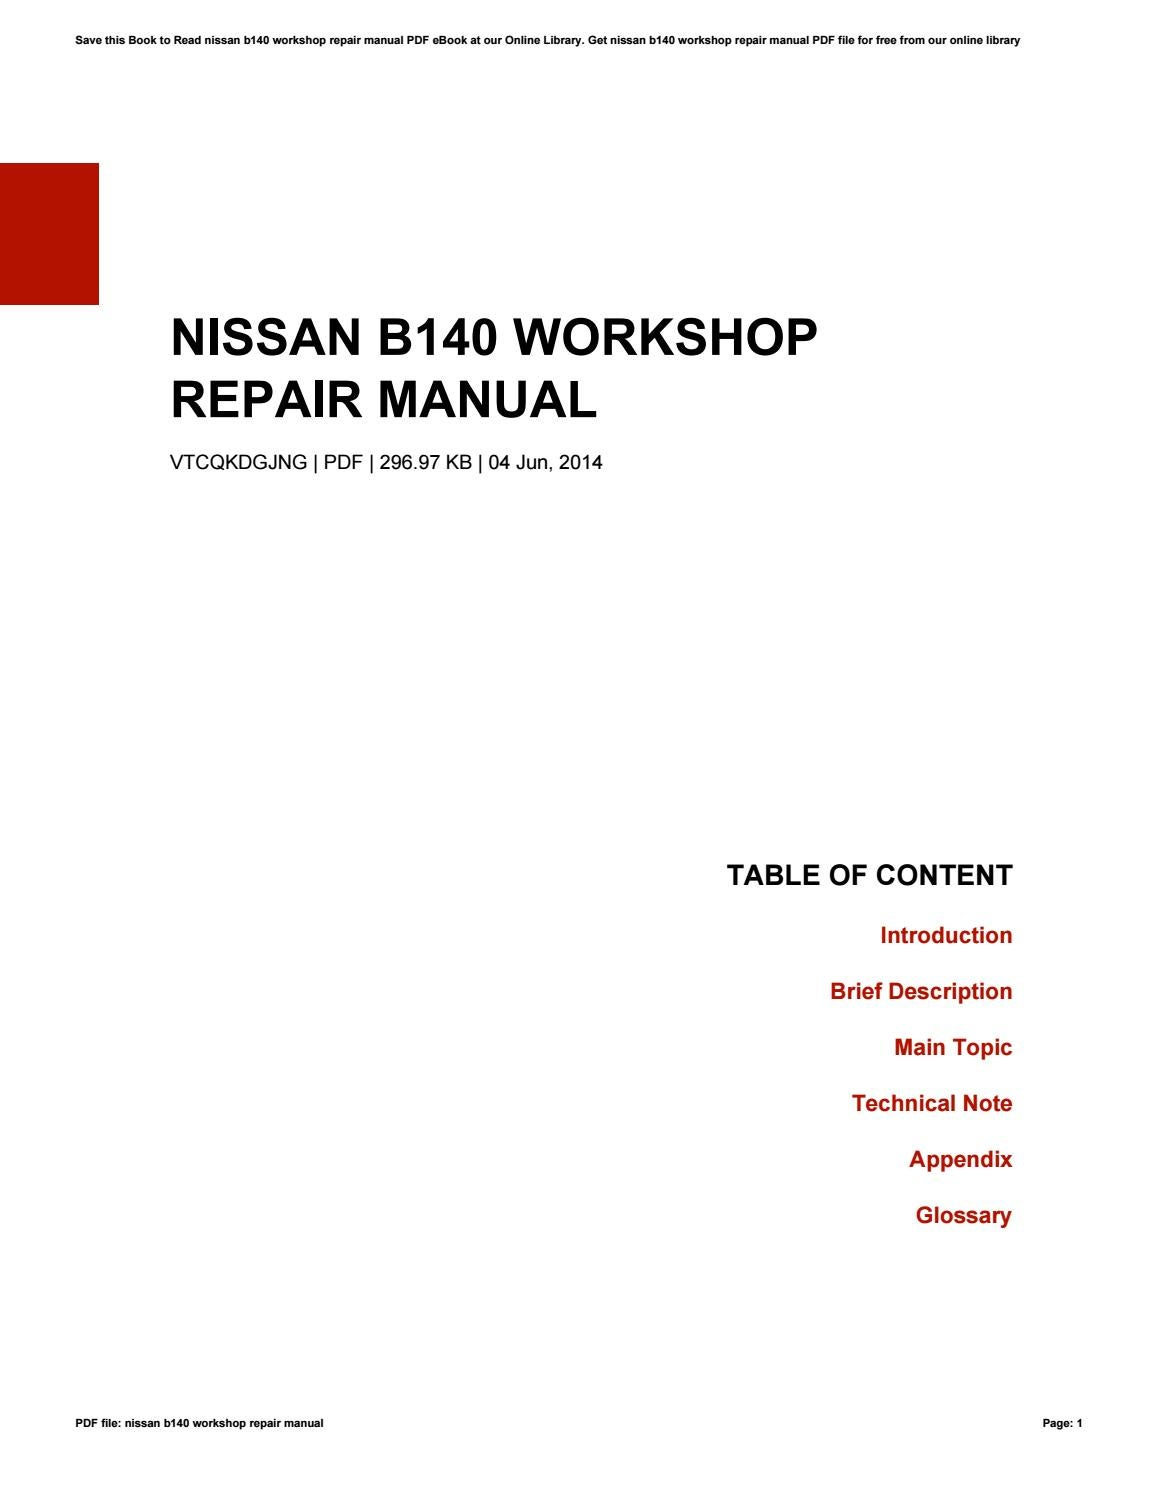 Nissan b140 workshop repair manual by ErnestMcDowell4614